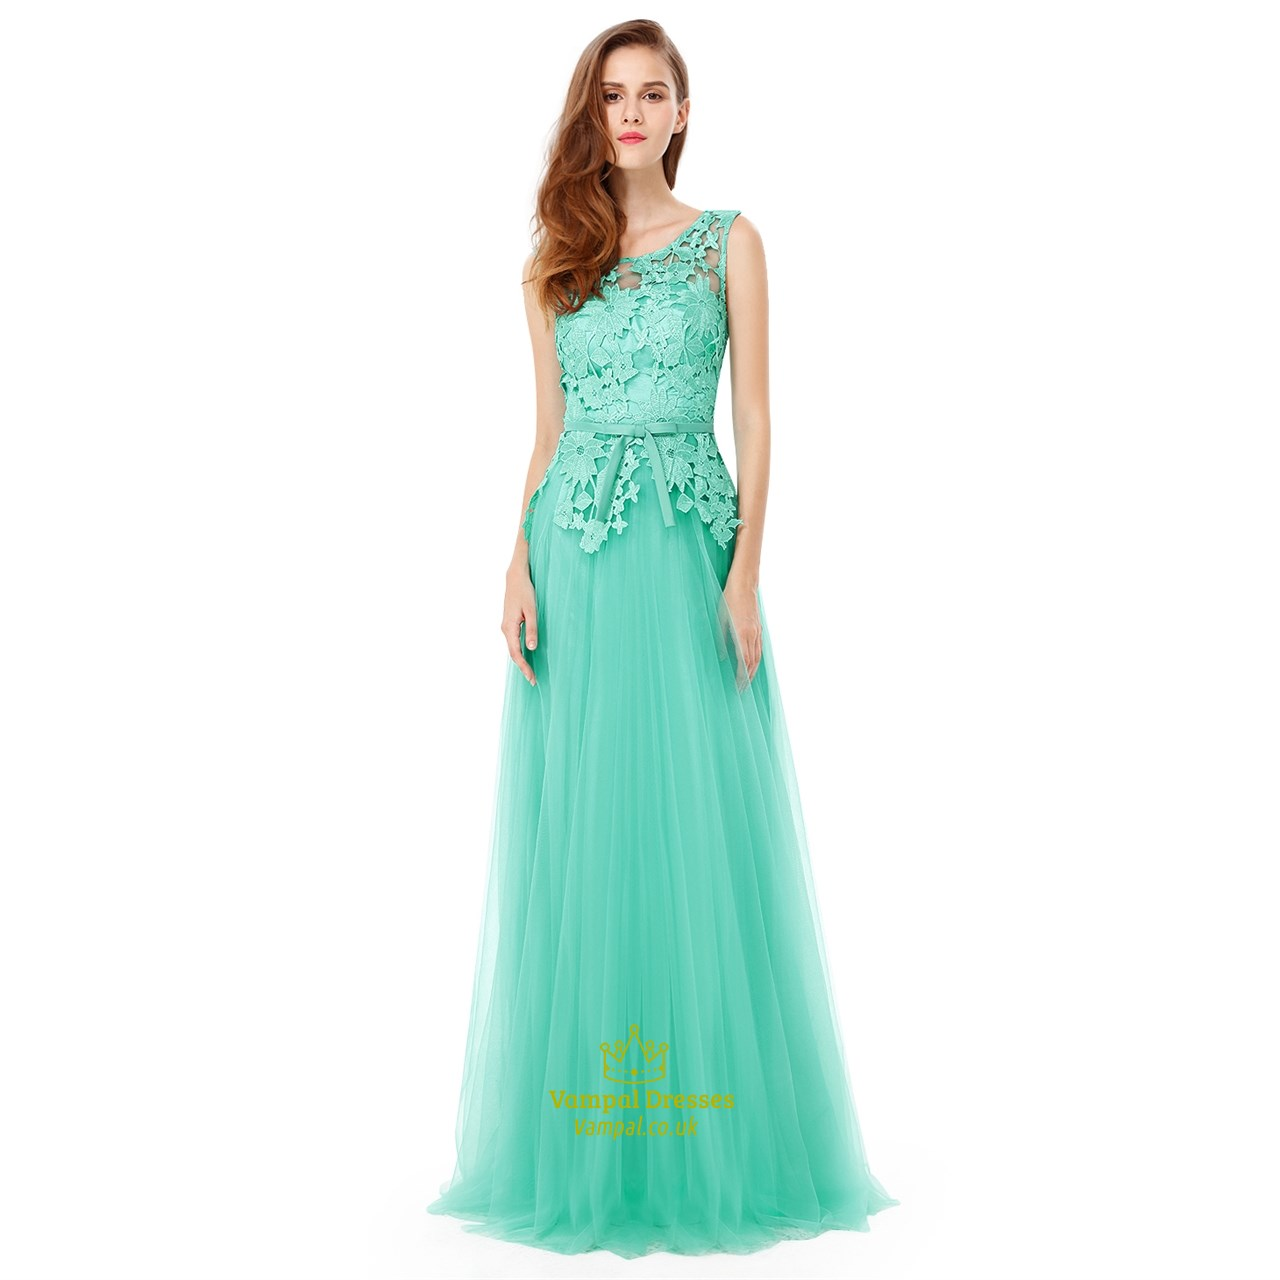 From dresses and skirts to shoes and accessories, Lulus has you covered. Free Shipping on orders over $50! Mint Clothing - Mint Green Dress, Shoes, Dresses, Jewelry & Heels.